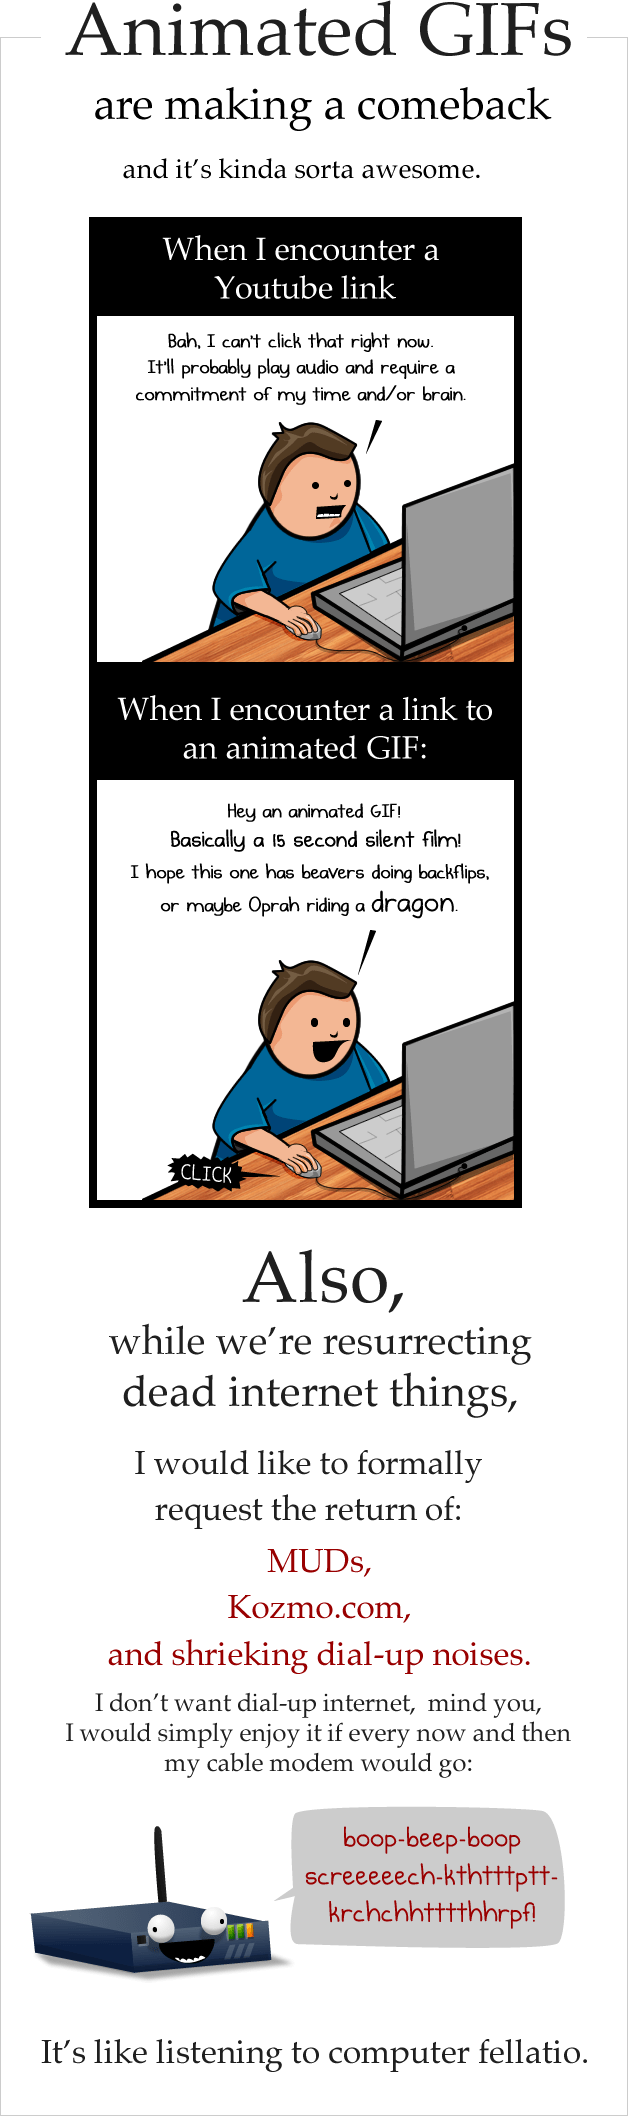 The State of the Web, Winter 2011-2013 - The Oatmeal